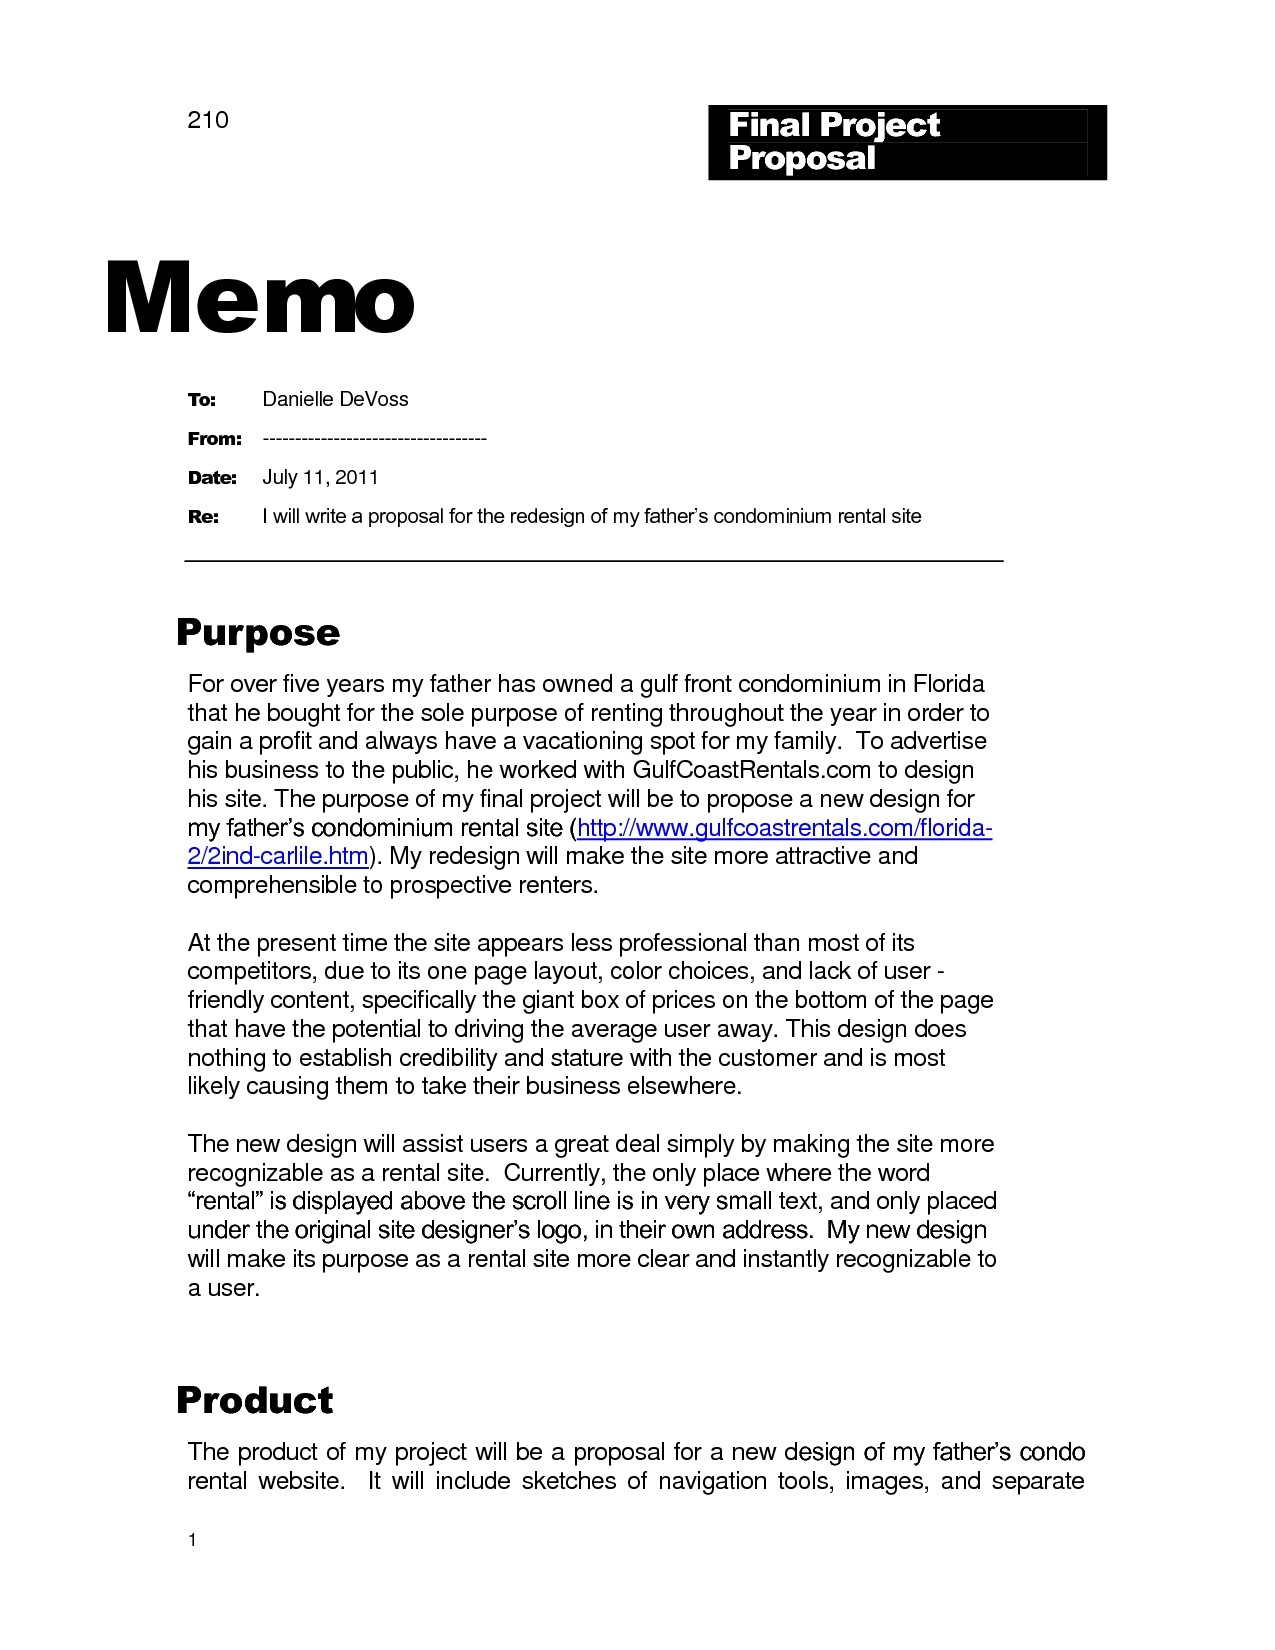 005 Business Memo Format Examples 265057 Template Ideas Templates